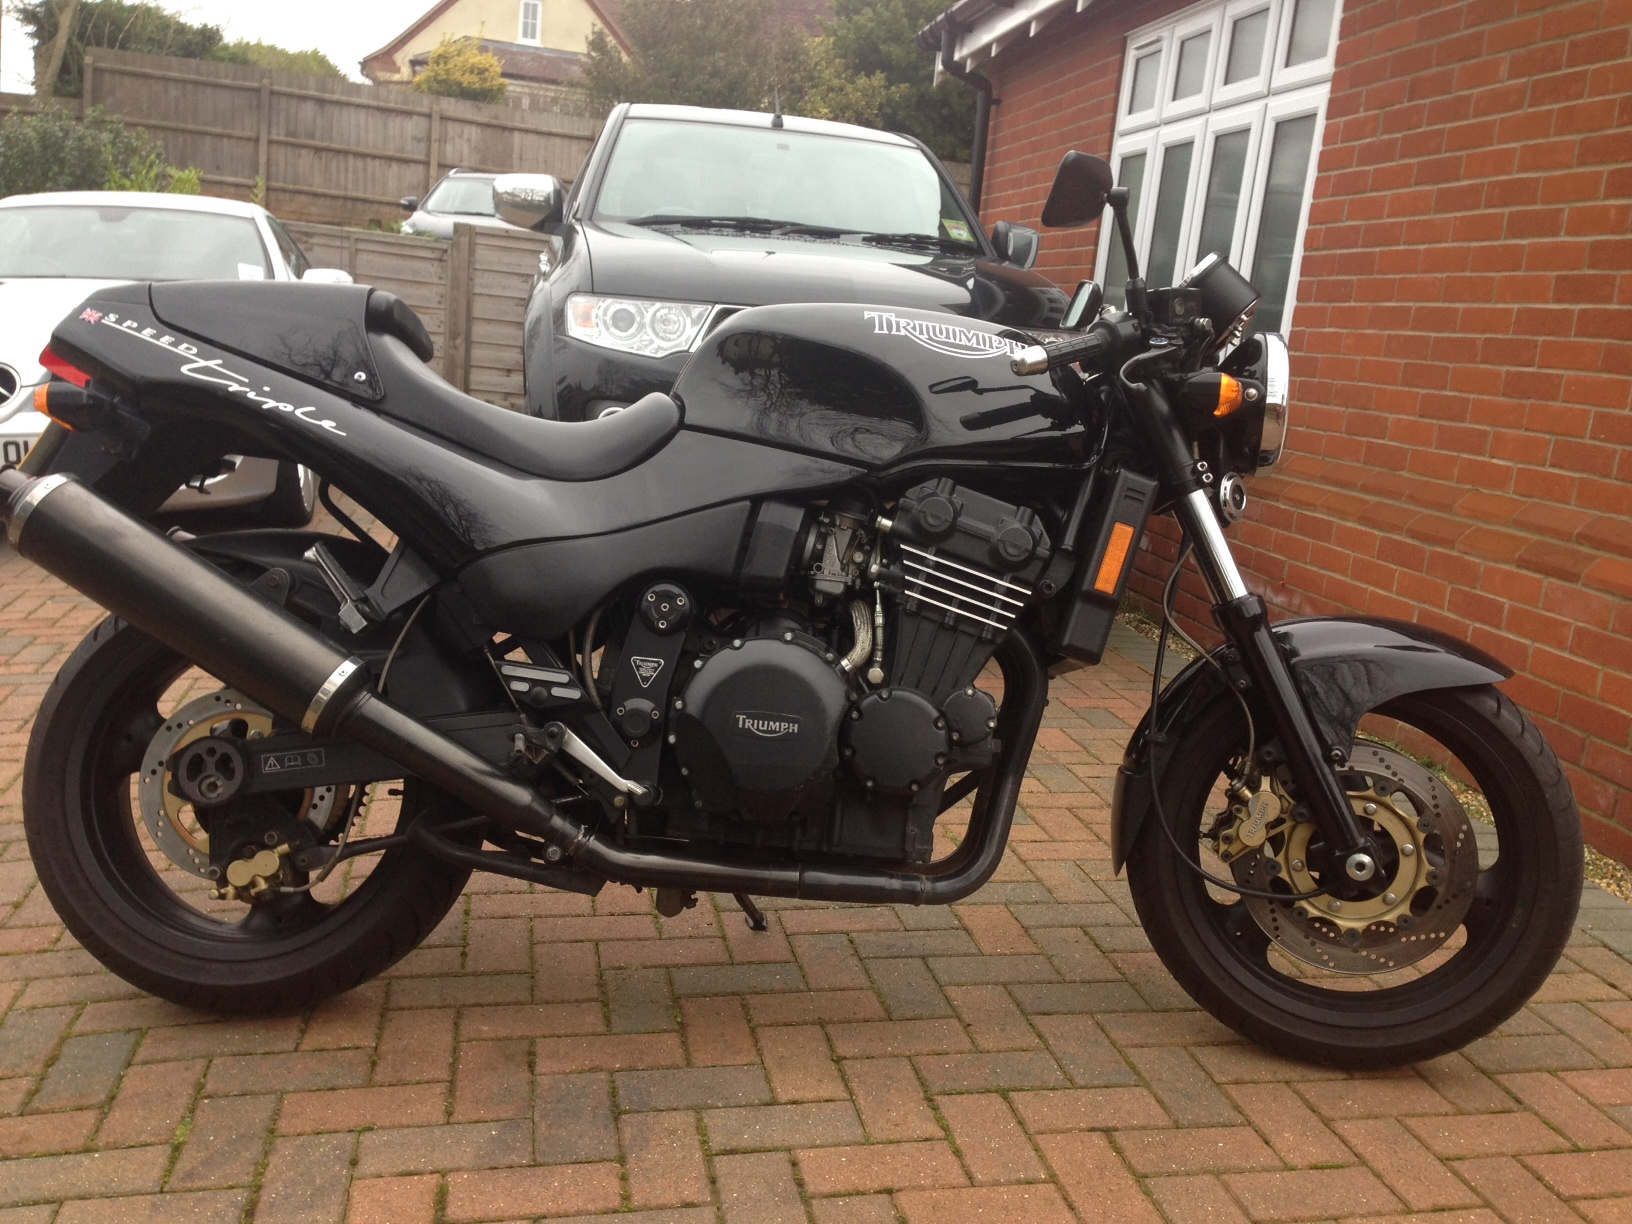 Triumph Speed Triple 900 1994 images #162595